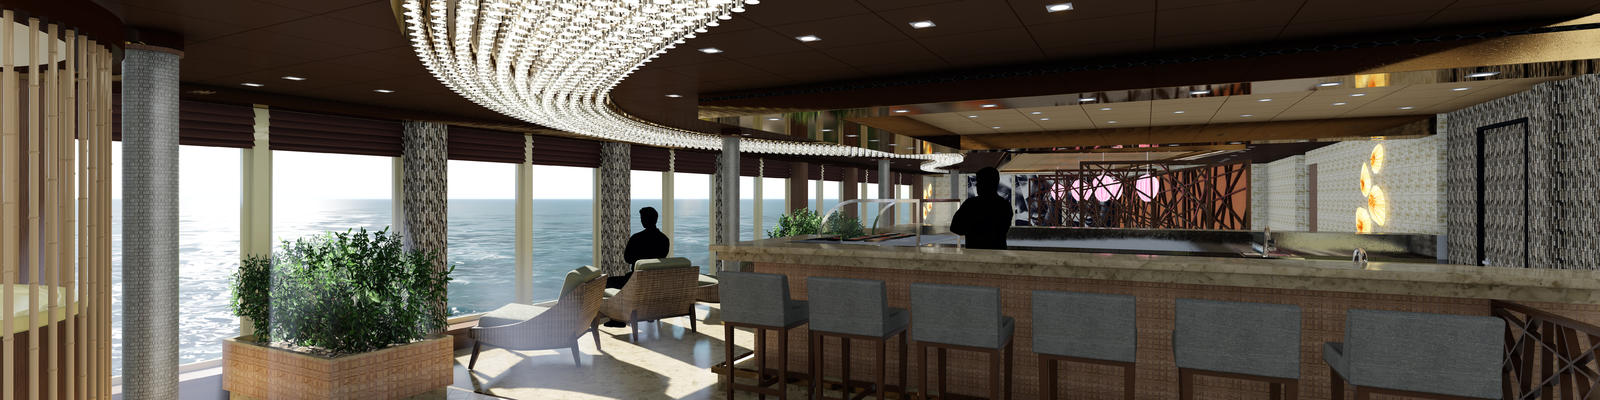 Asian market kitchen by roy yamaguchi on msc cruises for Roy s country kitchen